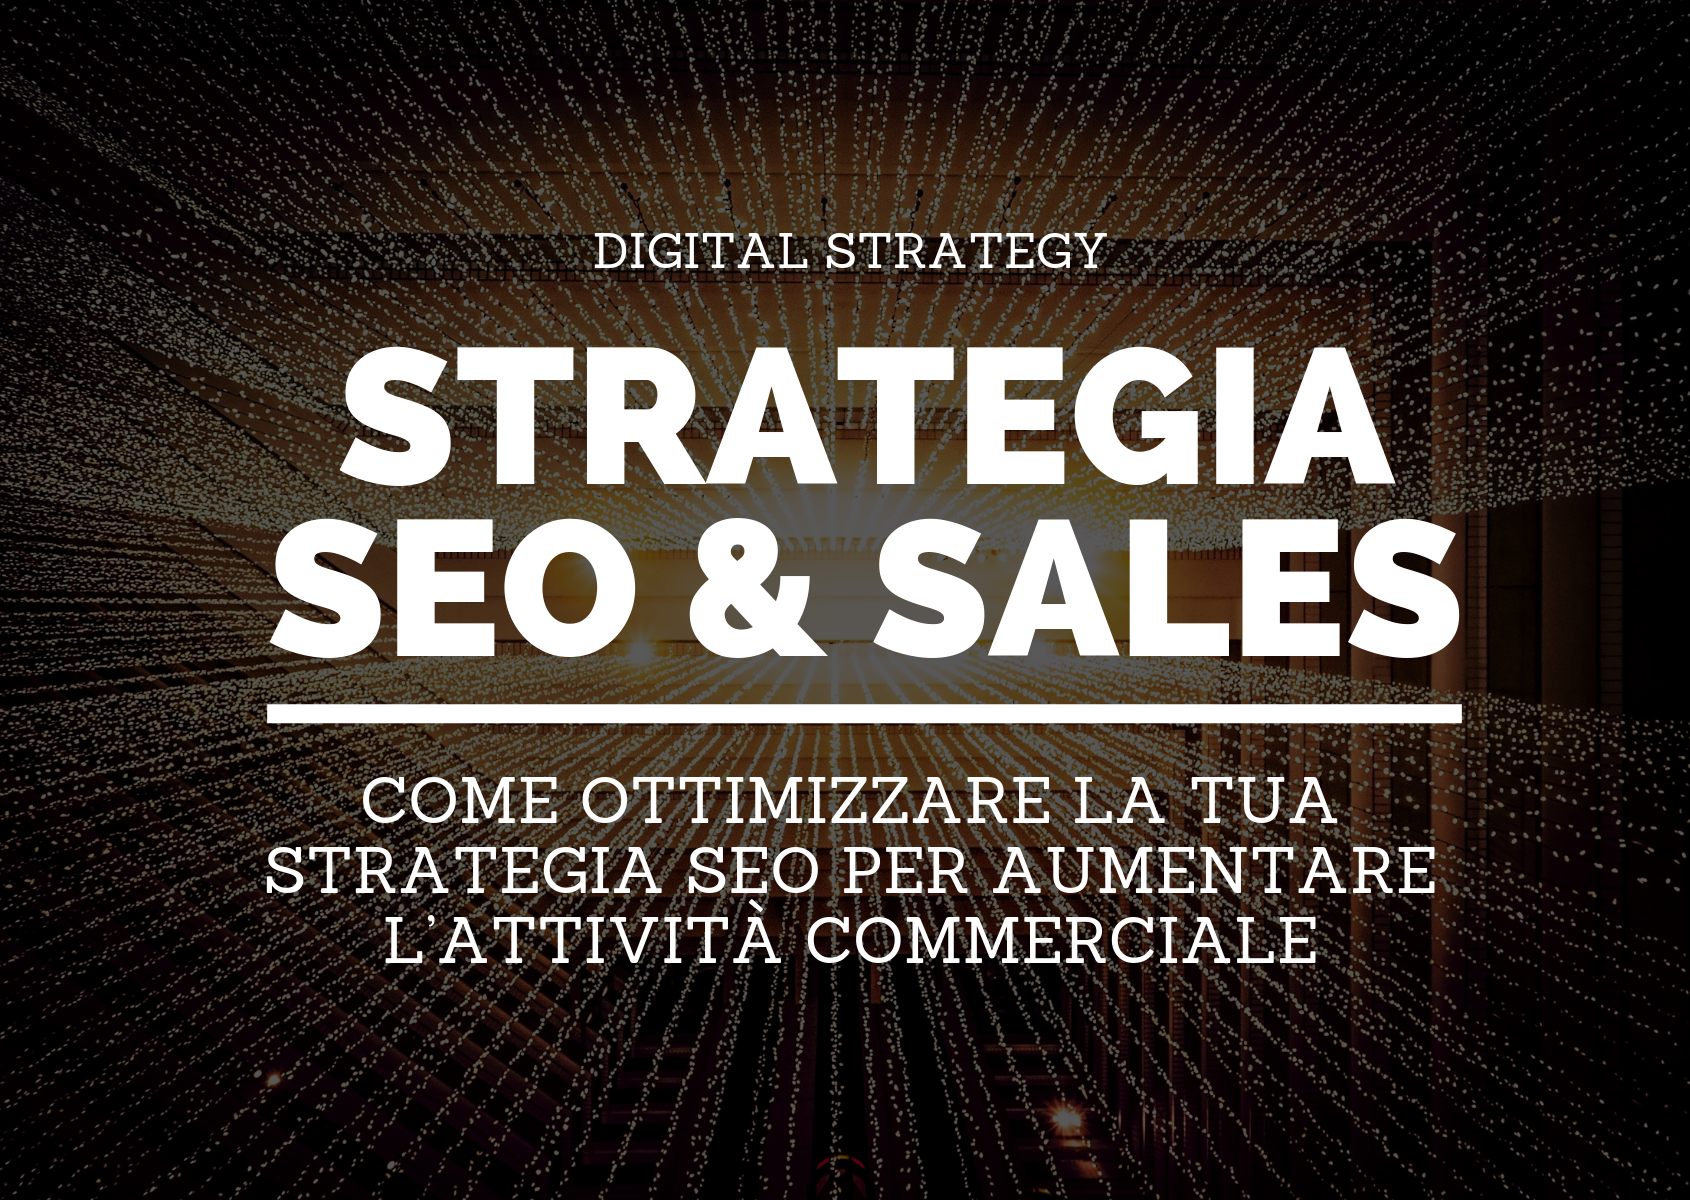 seo - sales strategy